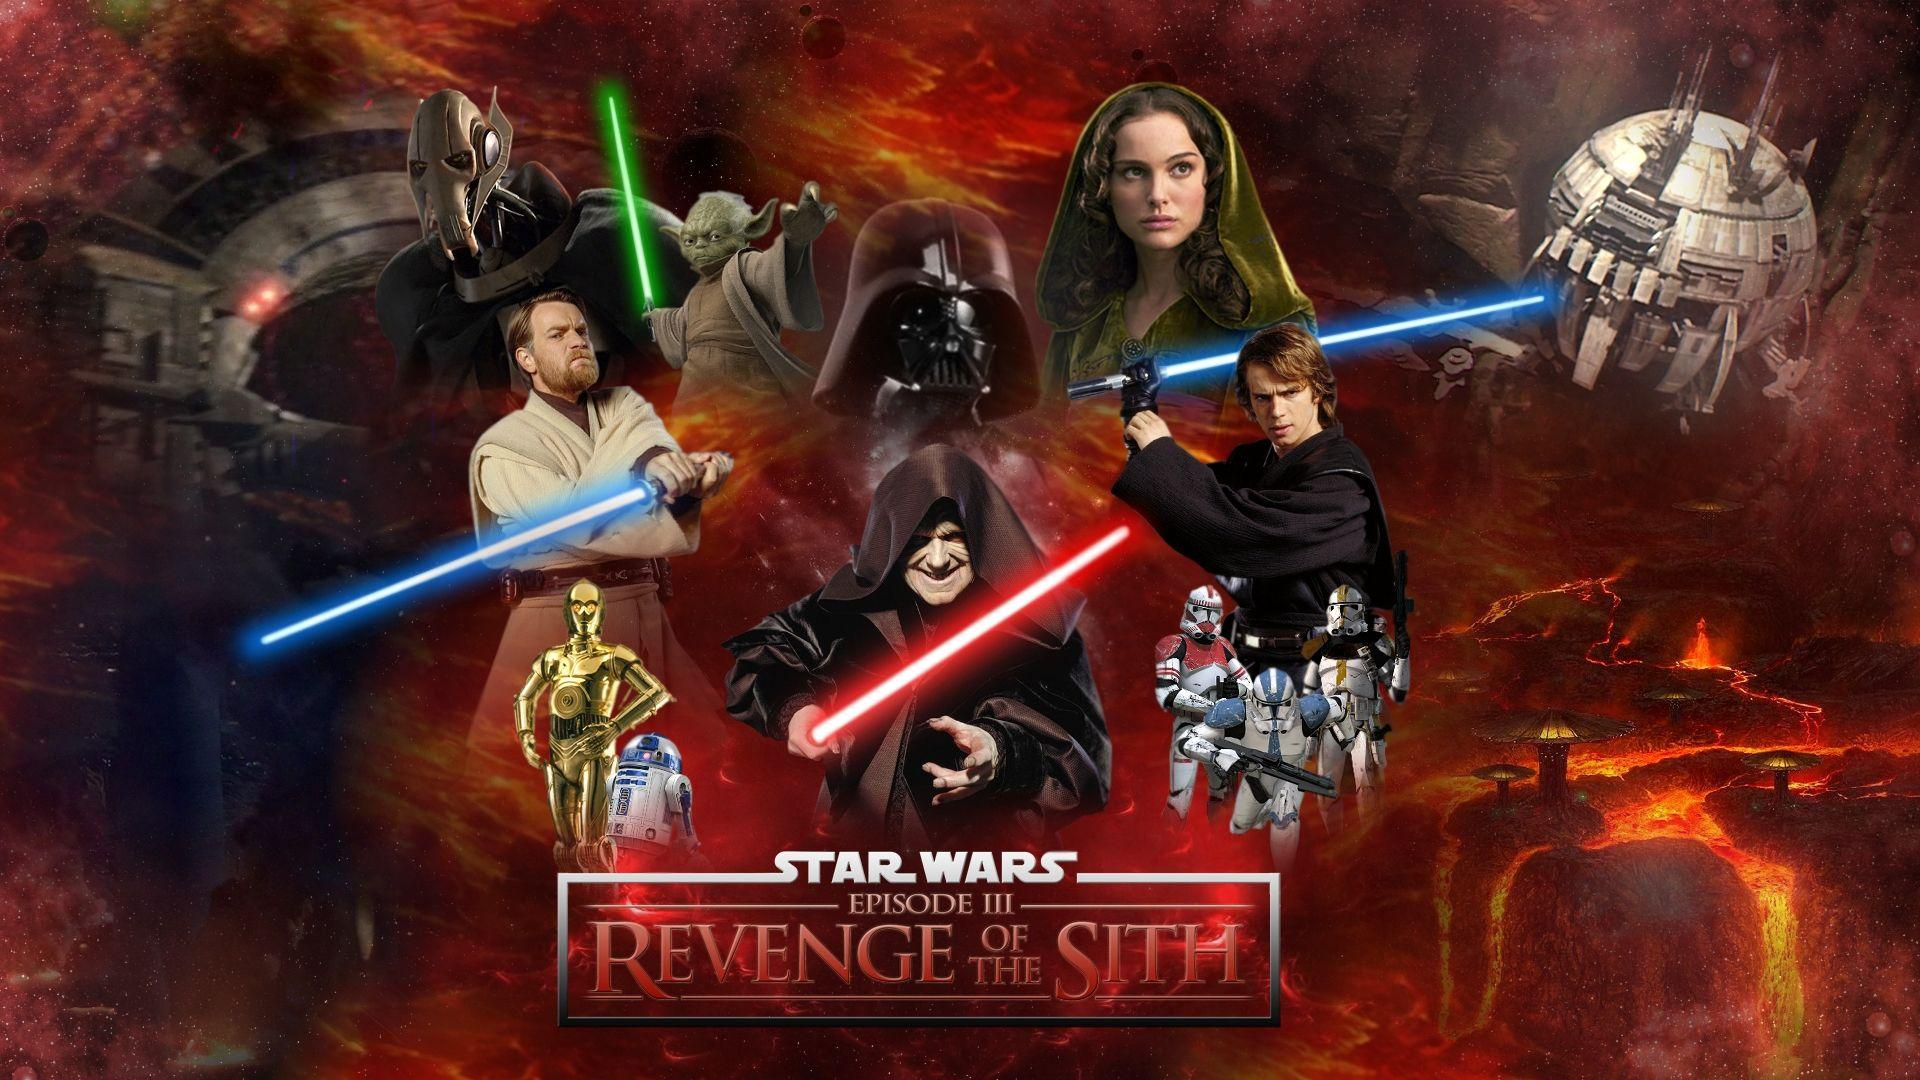 Star Wars Episode Iii Revenge Of The Sith Wallpapers Wallpaper Cave